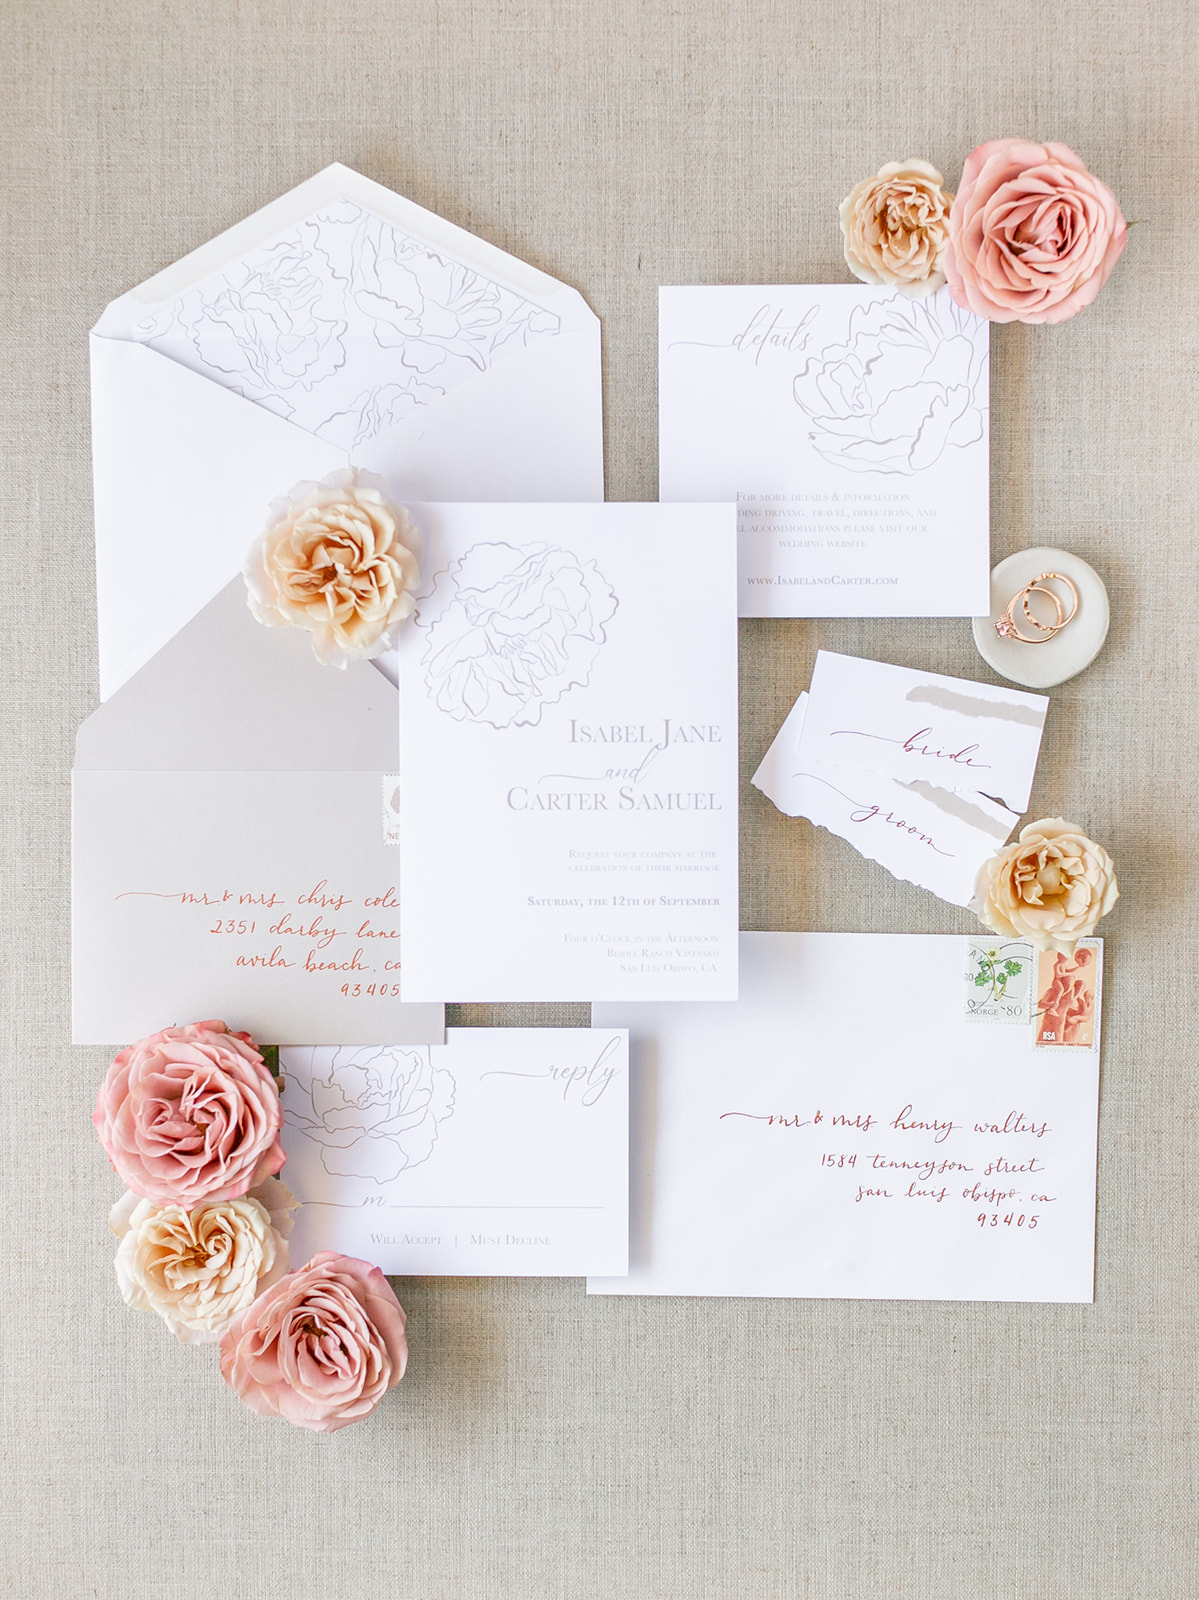 invitation, stationary, flowers, details